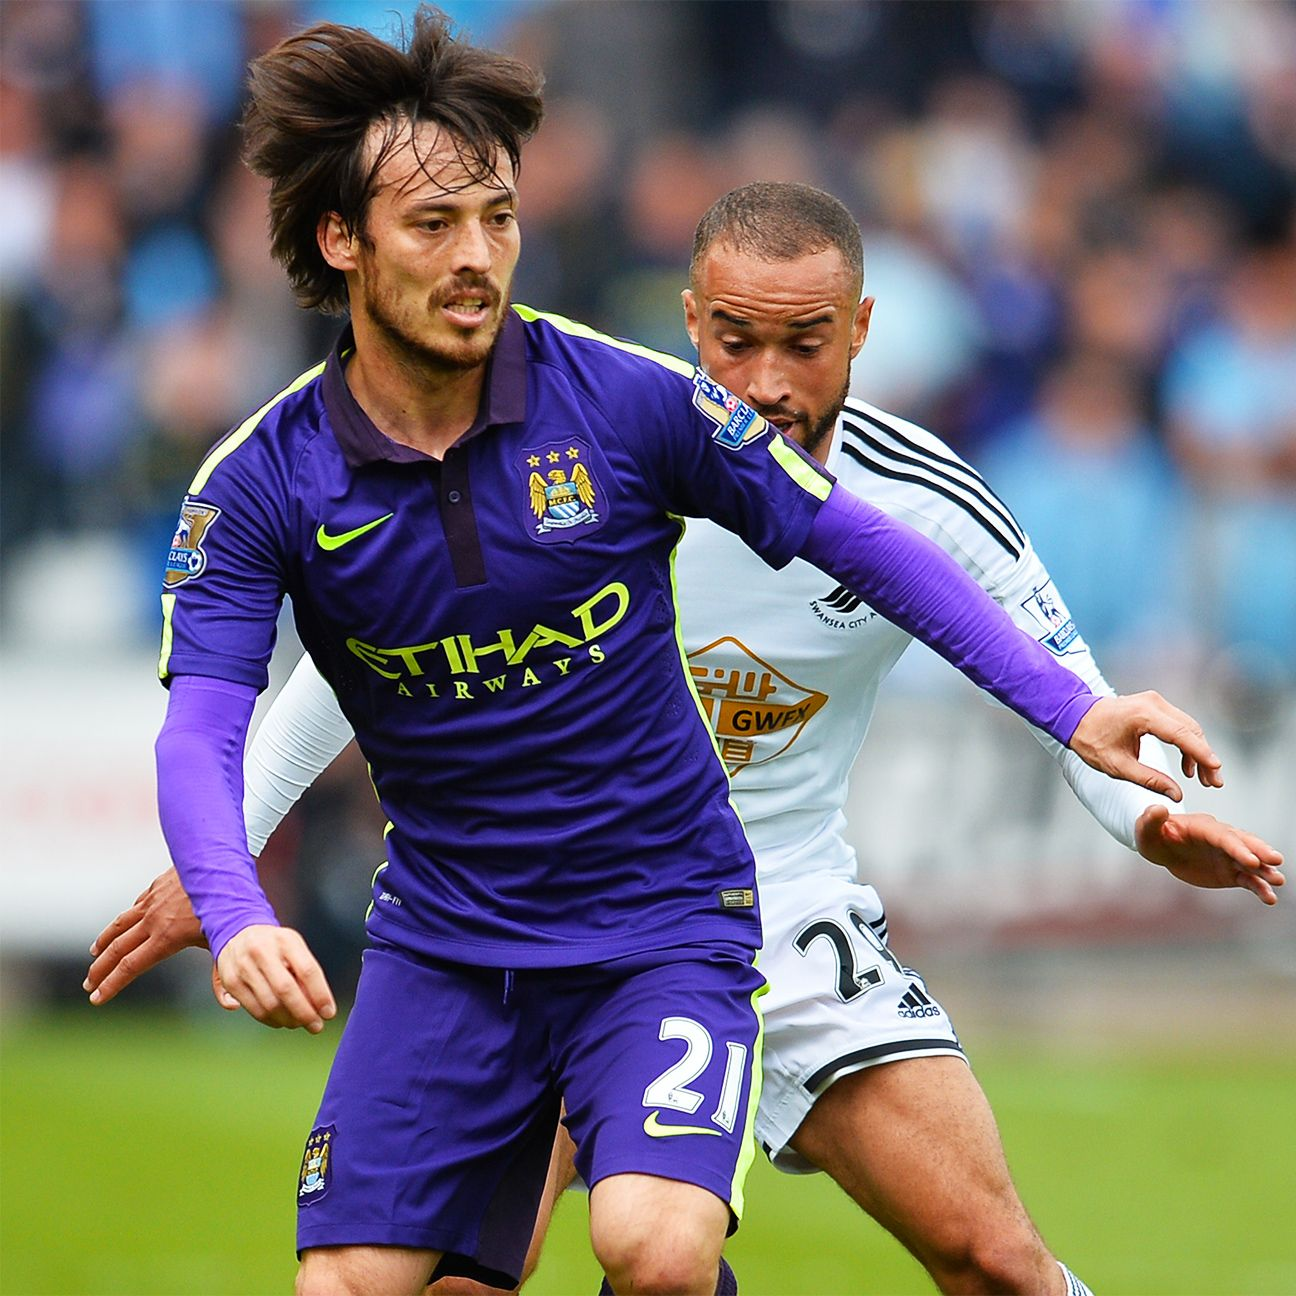 David Silva was back to his wizardry ways in midfield to help Manchester City to a 4-2 win at Swansea.